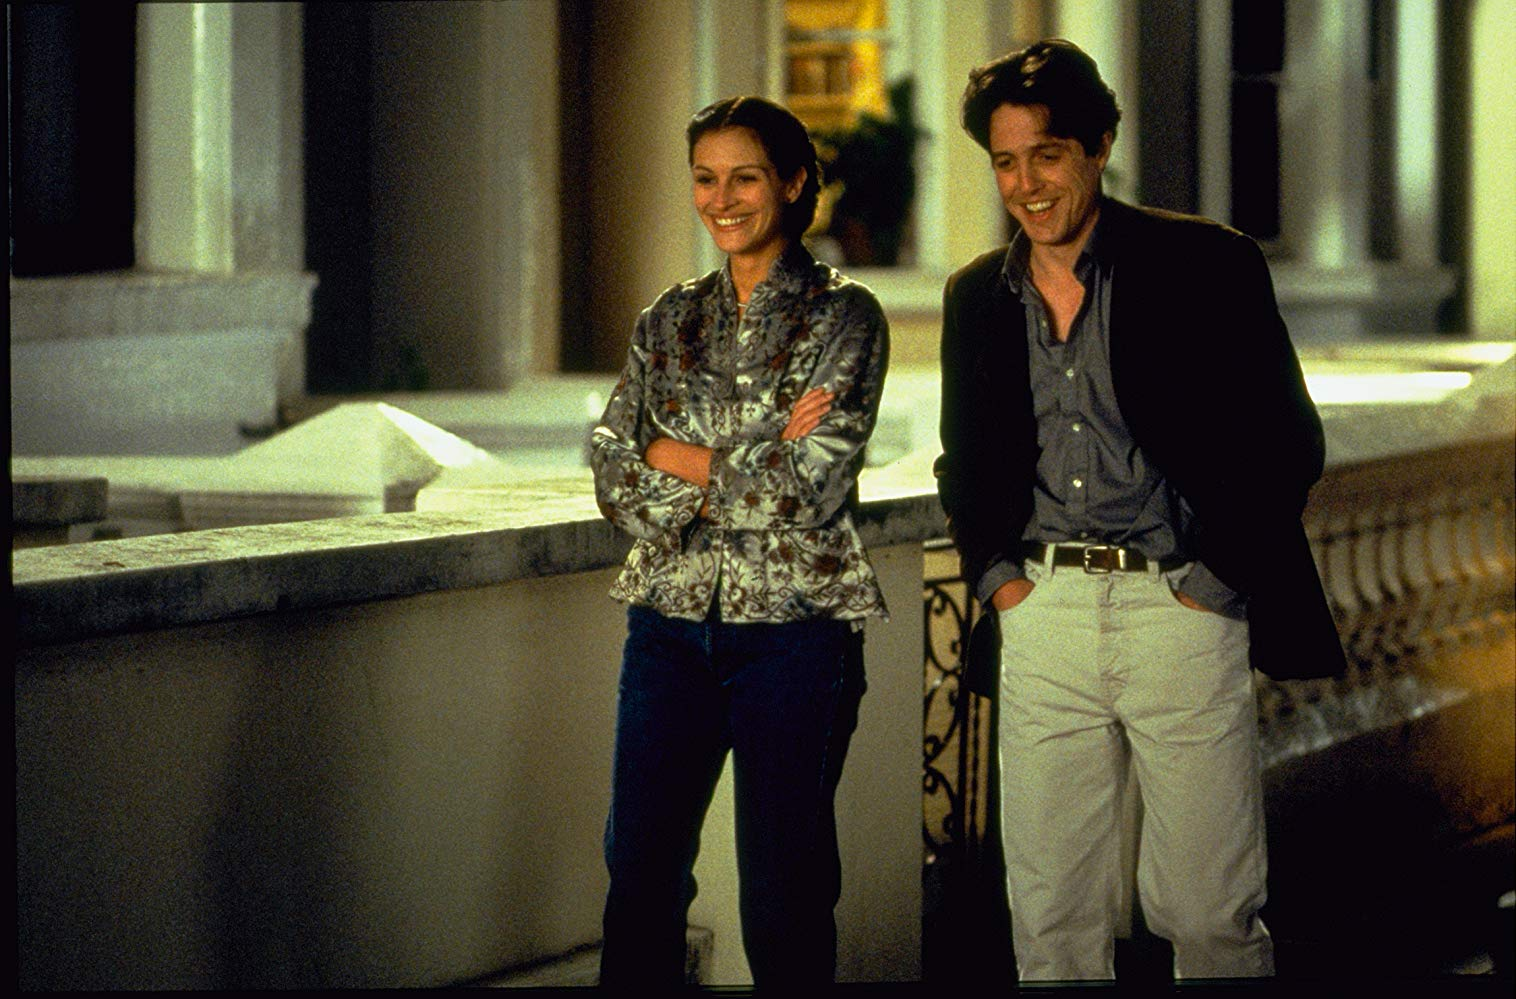 100. Notting Hill (1999)